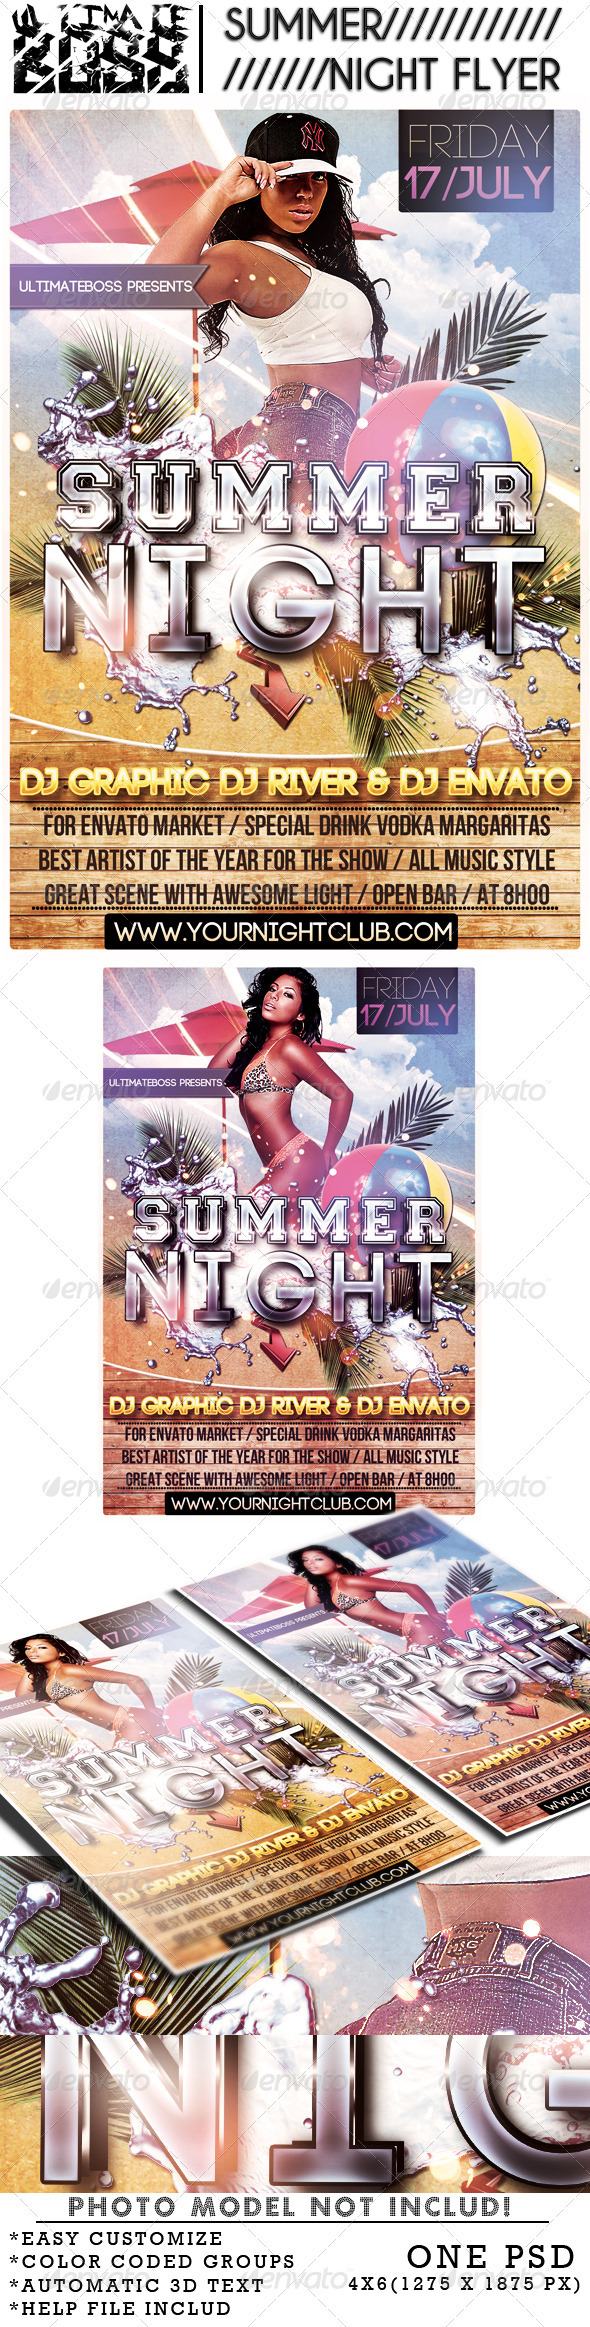 SUMMER NIGHT - Flyers Print Templates